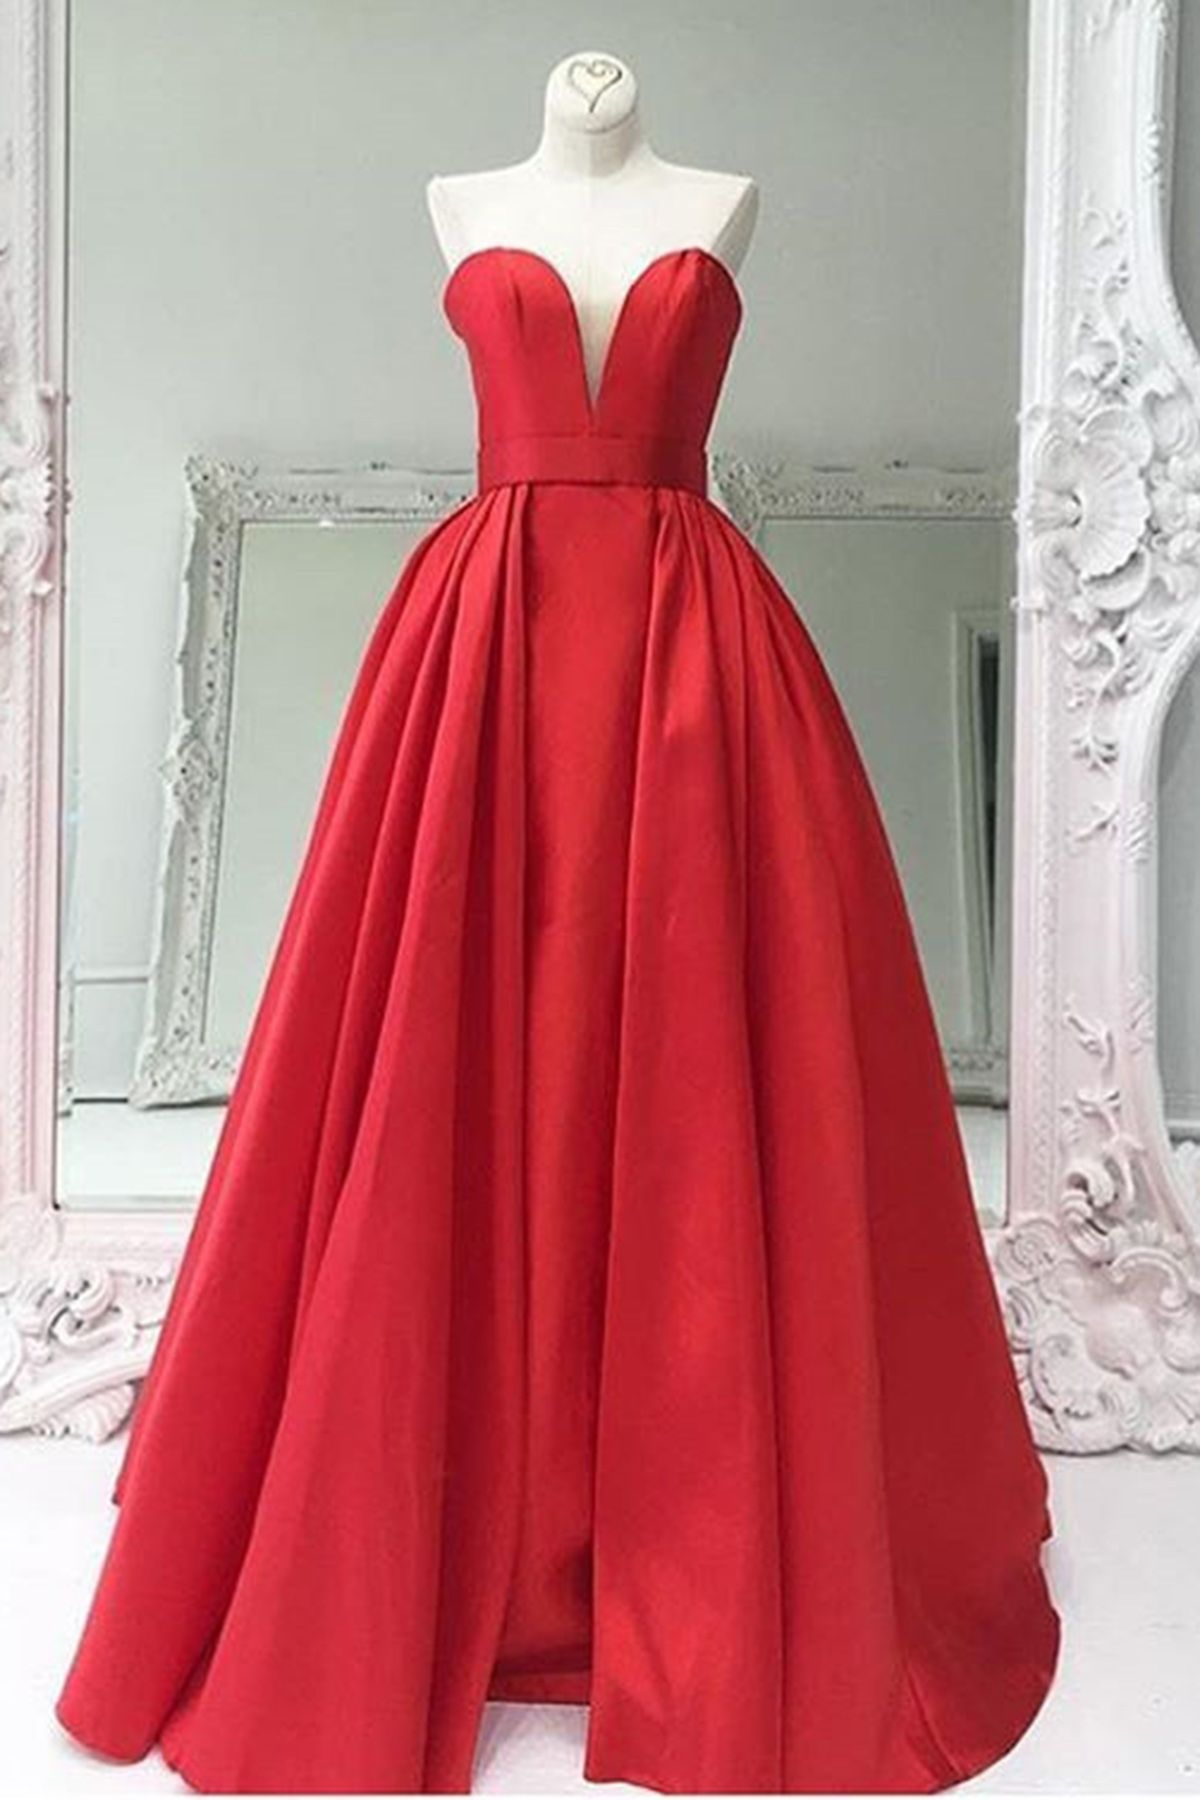 Sweetheart red satin a line long senior prom dress bridesmaid sweetheart red satin a line long senior prom dress bridesmaid dresses ombrellifo Gallery